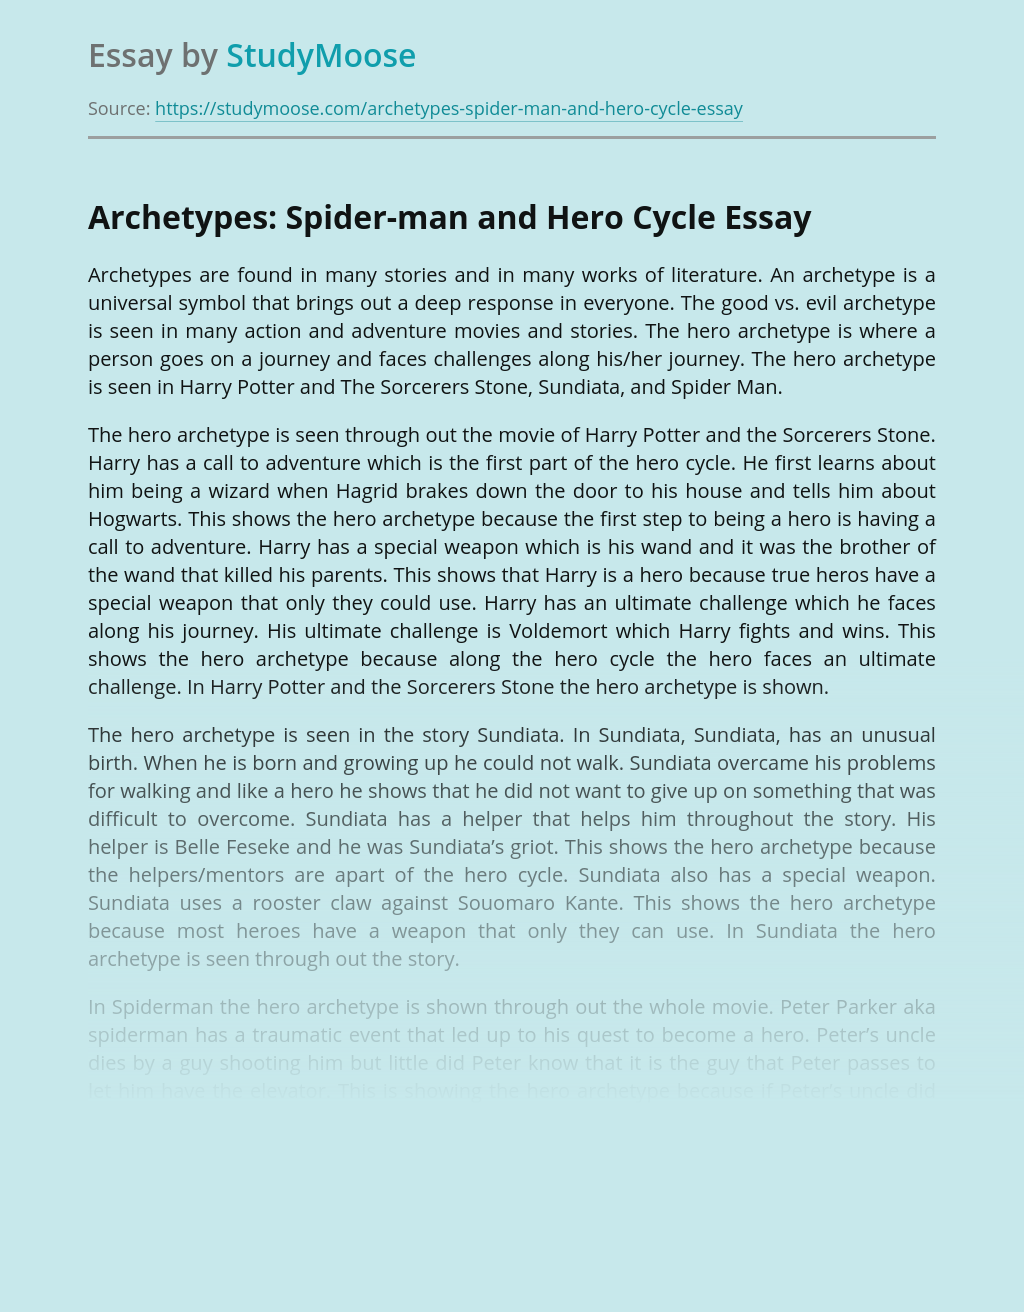 Archetypes: Spider-man and Hero Cycle